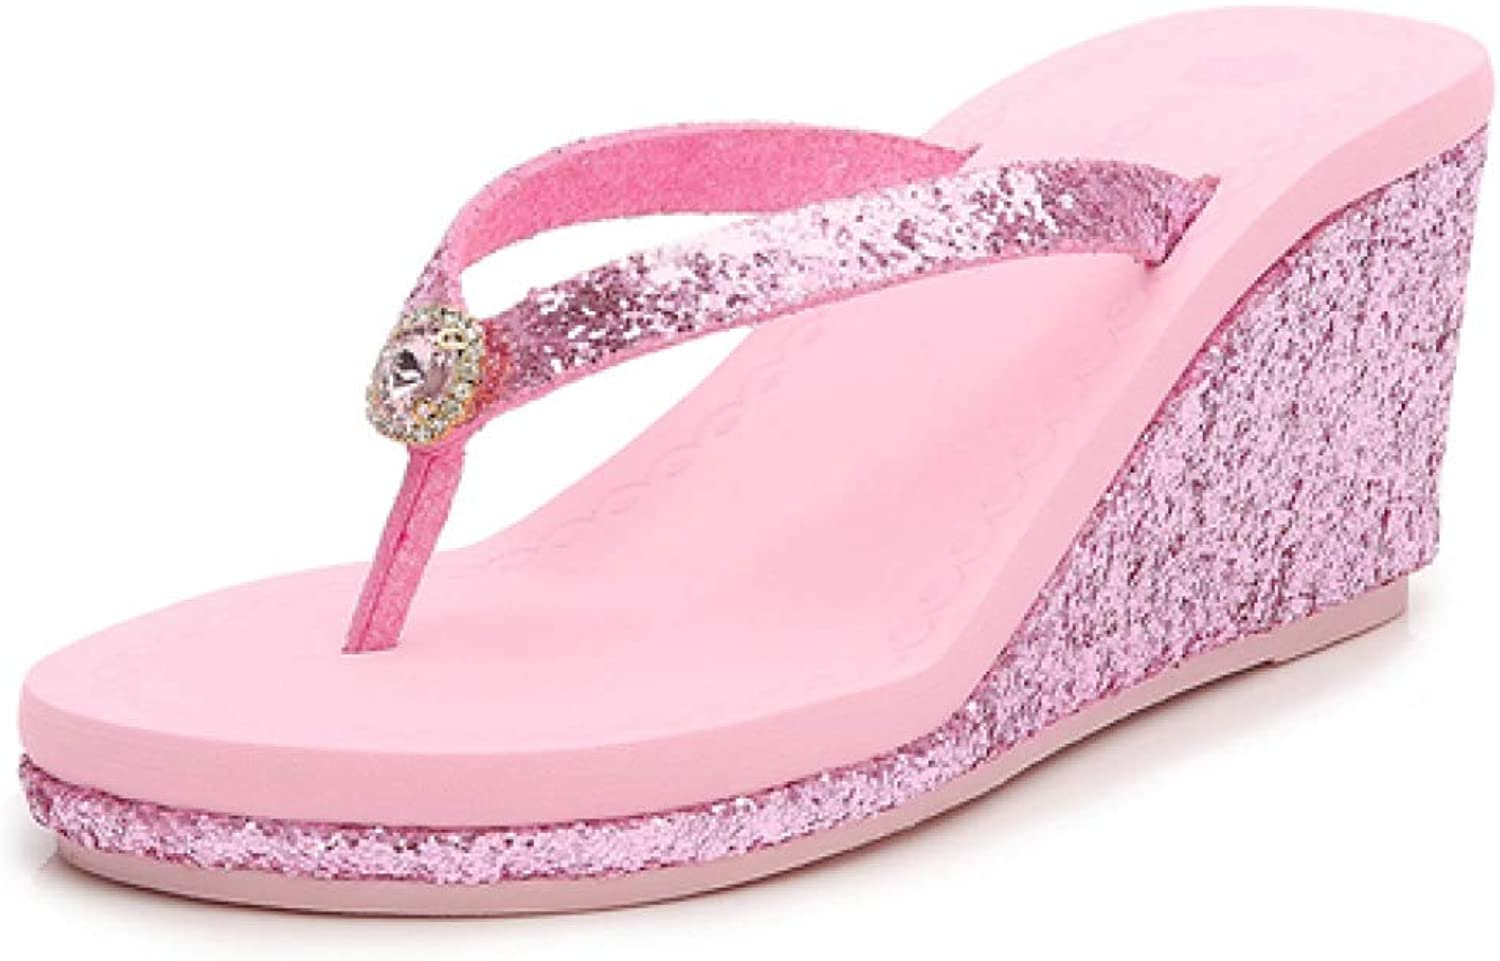 T-JULY Womens Sequins Diamonds Beach Flip Flops Ladies Non-Slip Wedges High Heels Slippers Summer